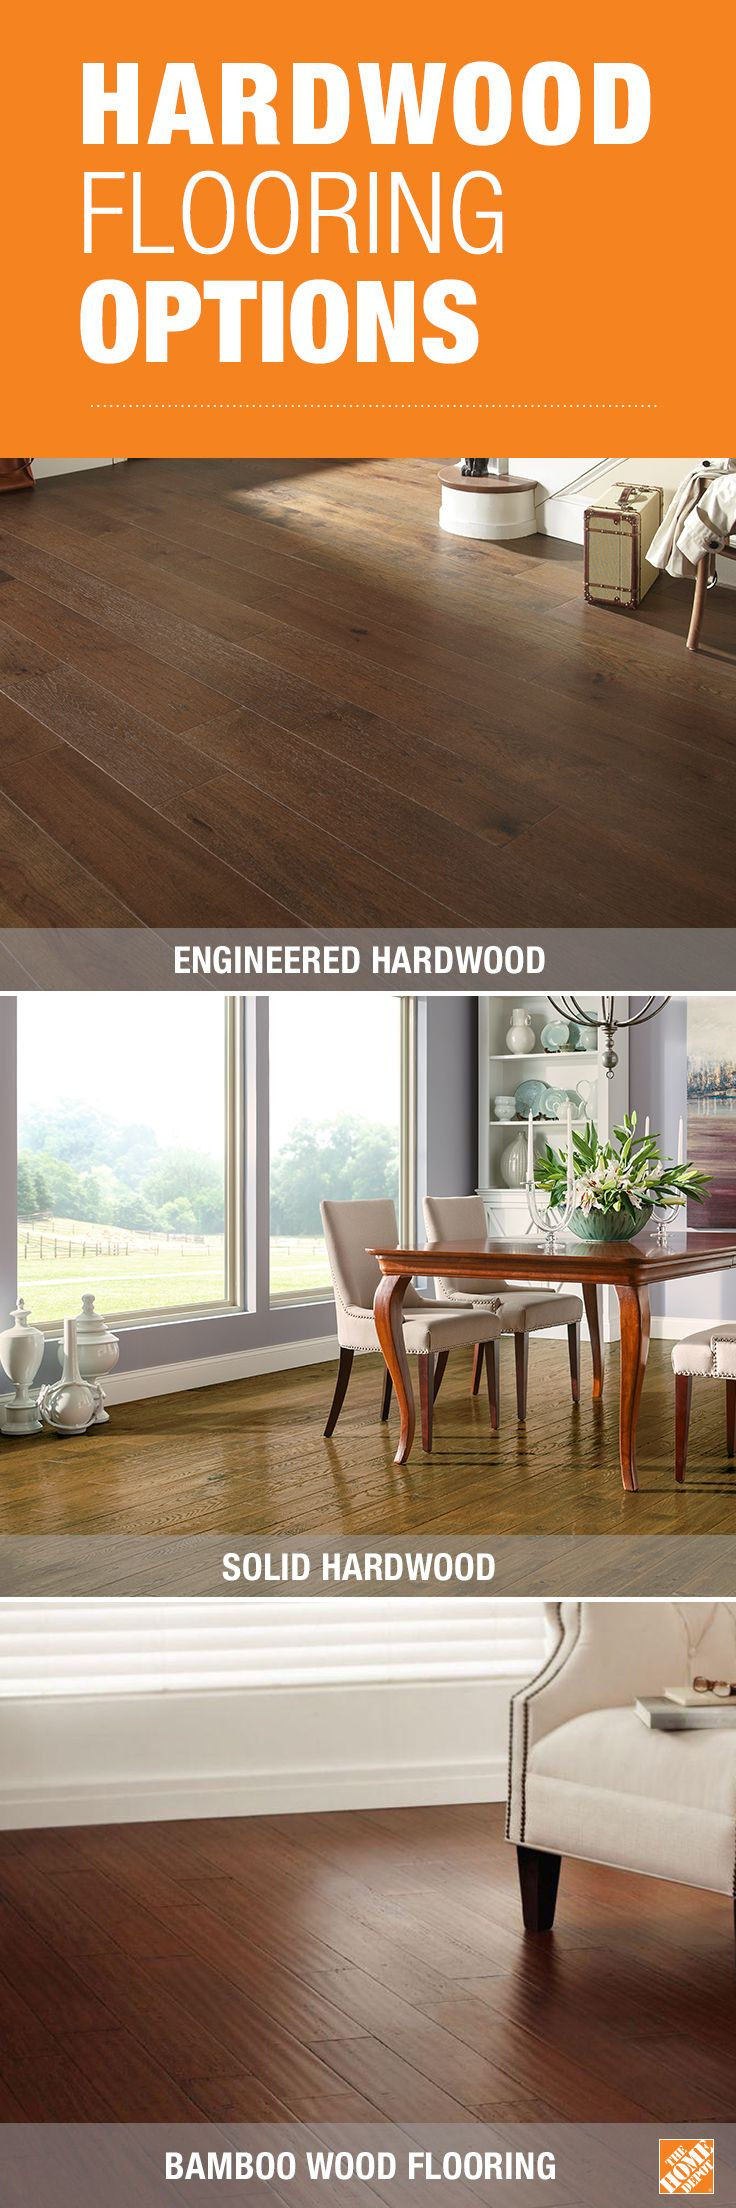 Hardwood Floor Refinishing Burlington Ontario Of 161 Best Home Improvement Images On Pinterest Historic Homes Old within Find A Wide Selection Of Wood Flooring at the Home Depot Including the Latest In